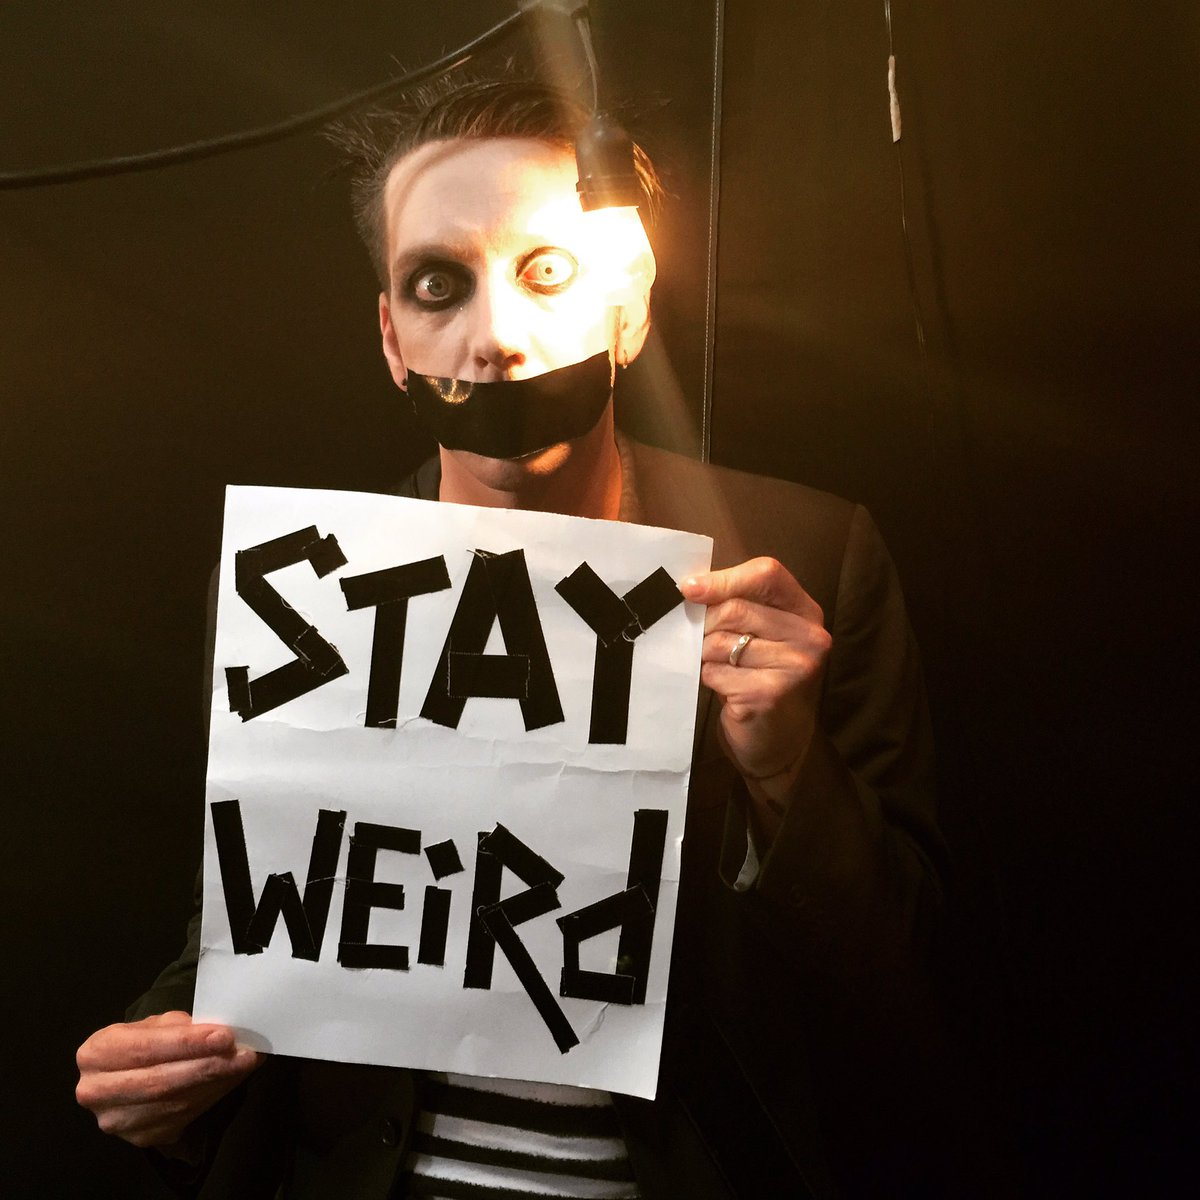 I love you all. #tapeface #stayweird #silentones https://t.co/ZE4XEVvaWT